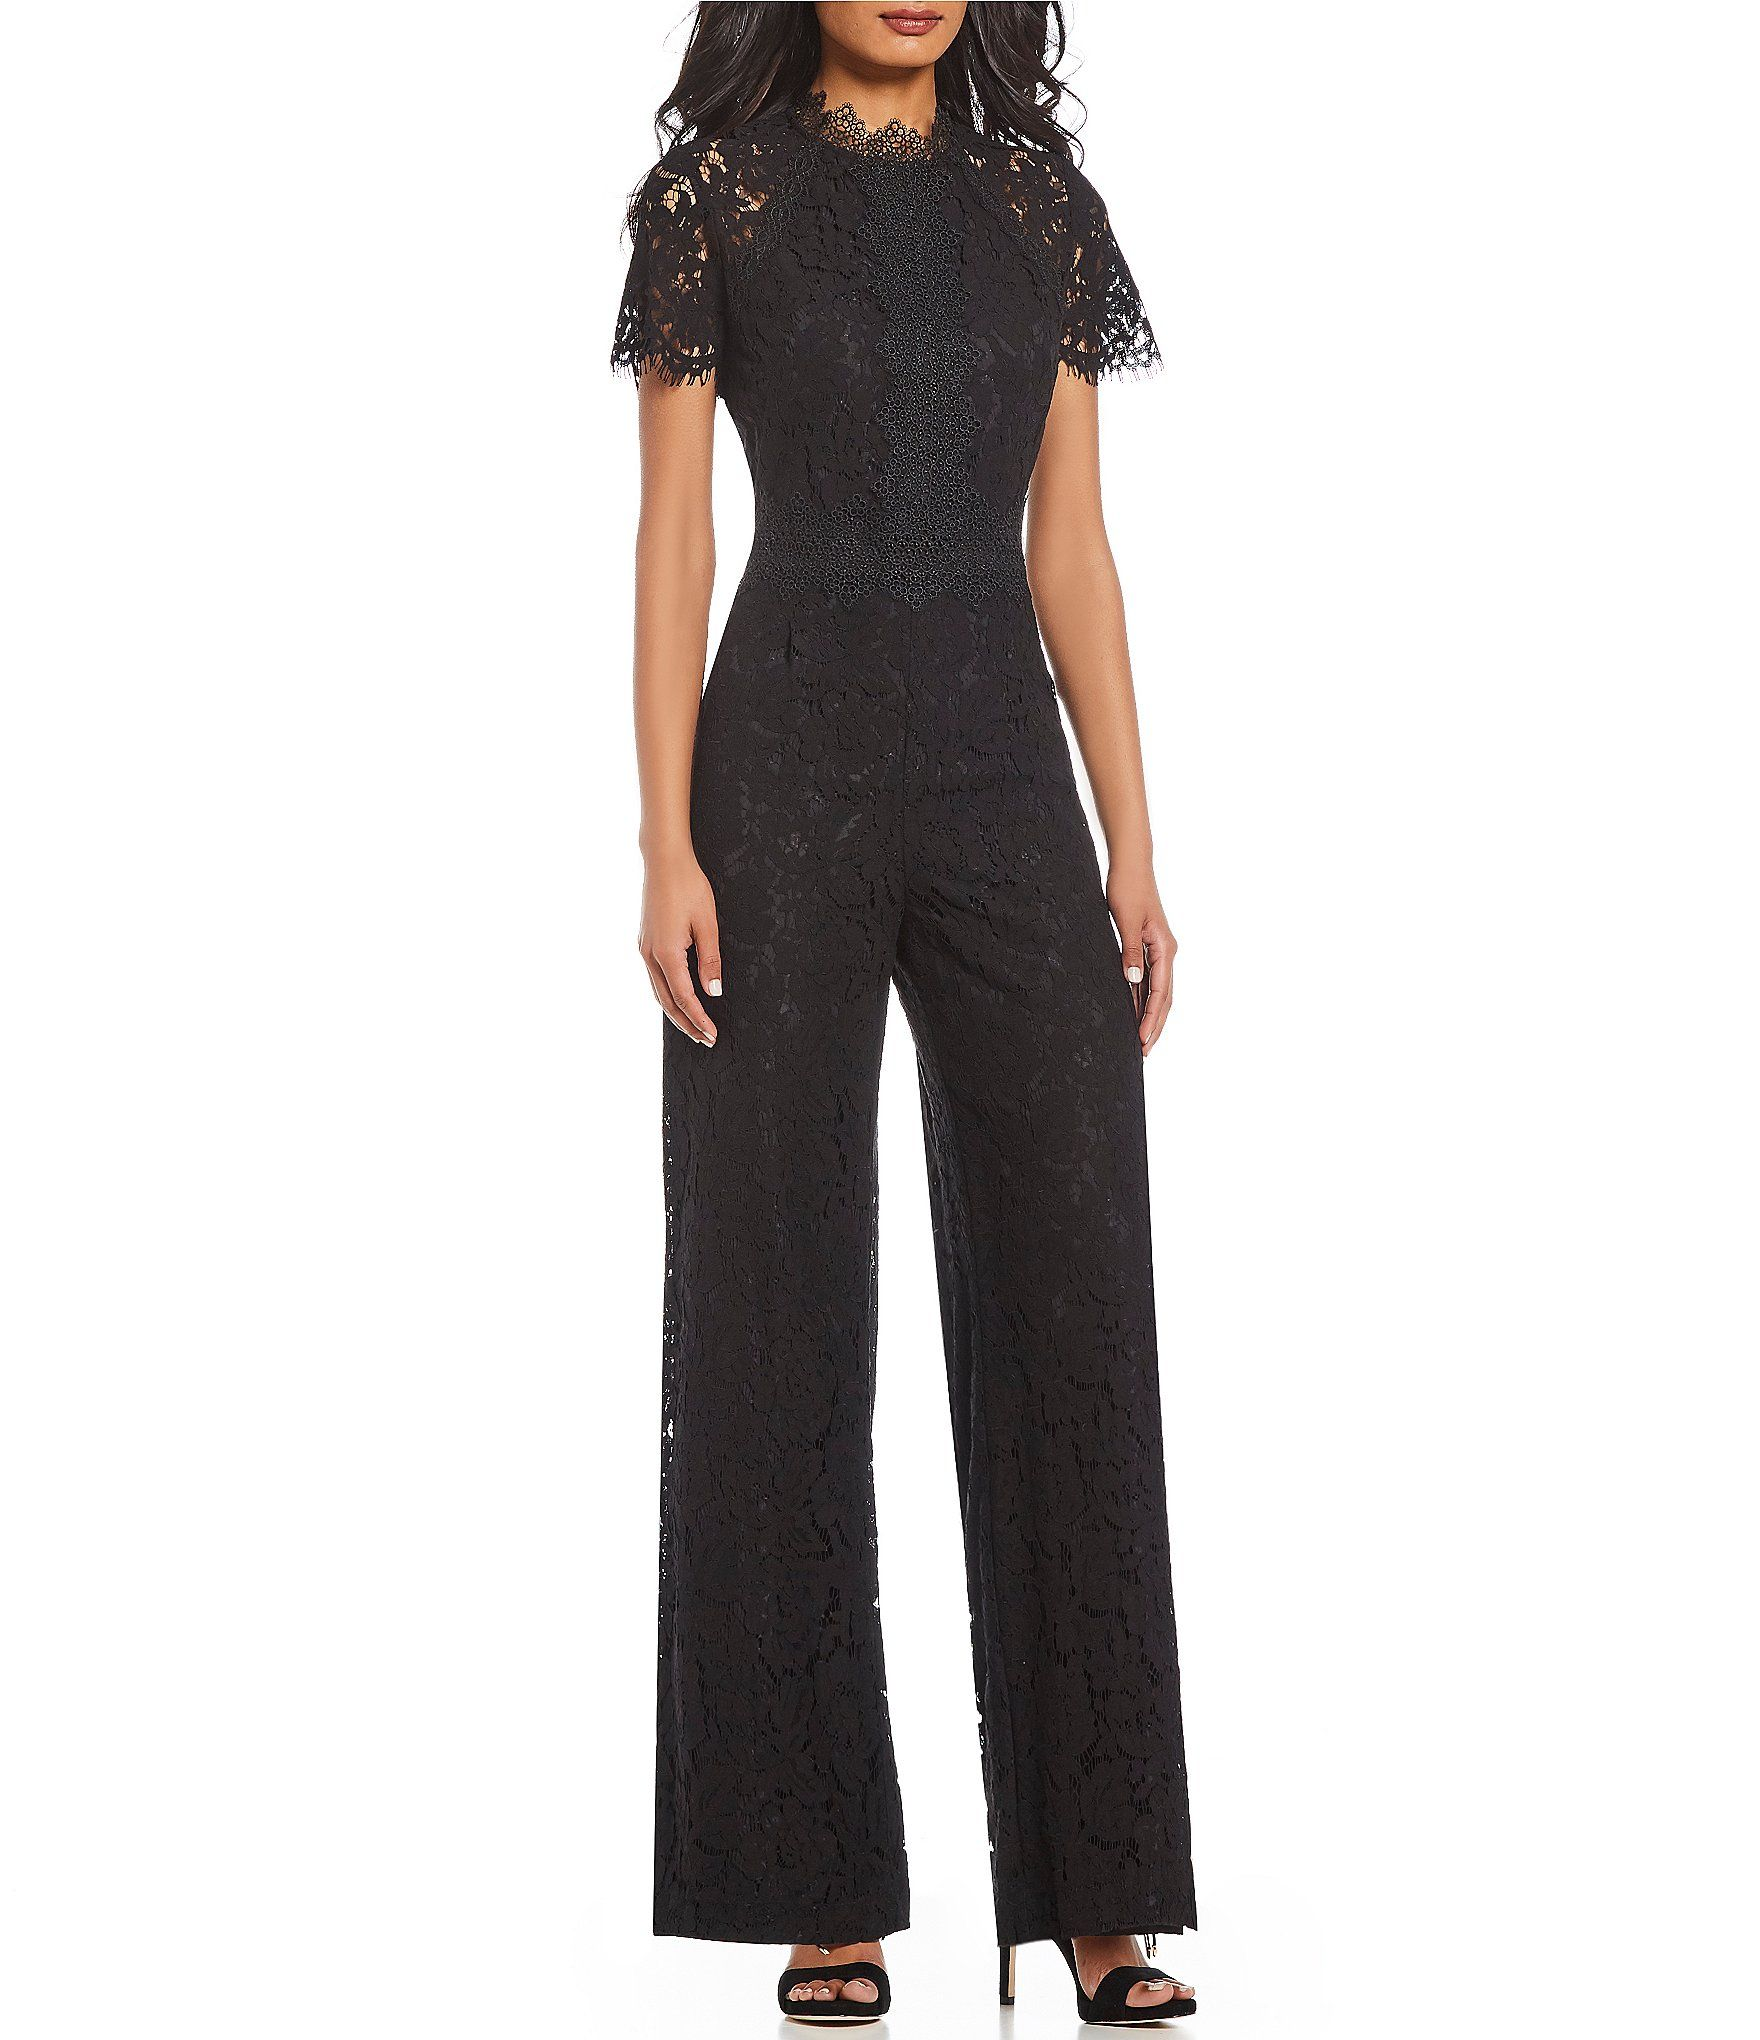 d22f6bd8452a7 Shop for Antonio Melani Pho Lace Jumpsuit at Dillards.com. Visit  Dillards.com to find clothing